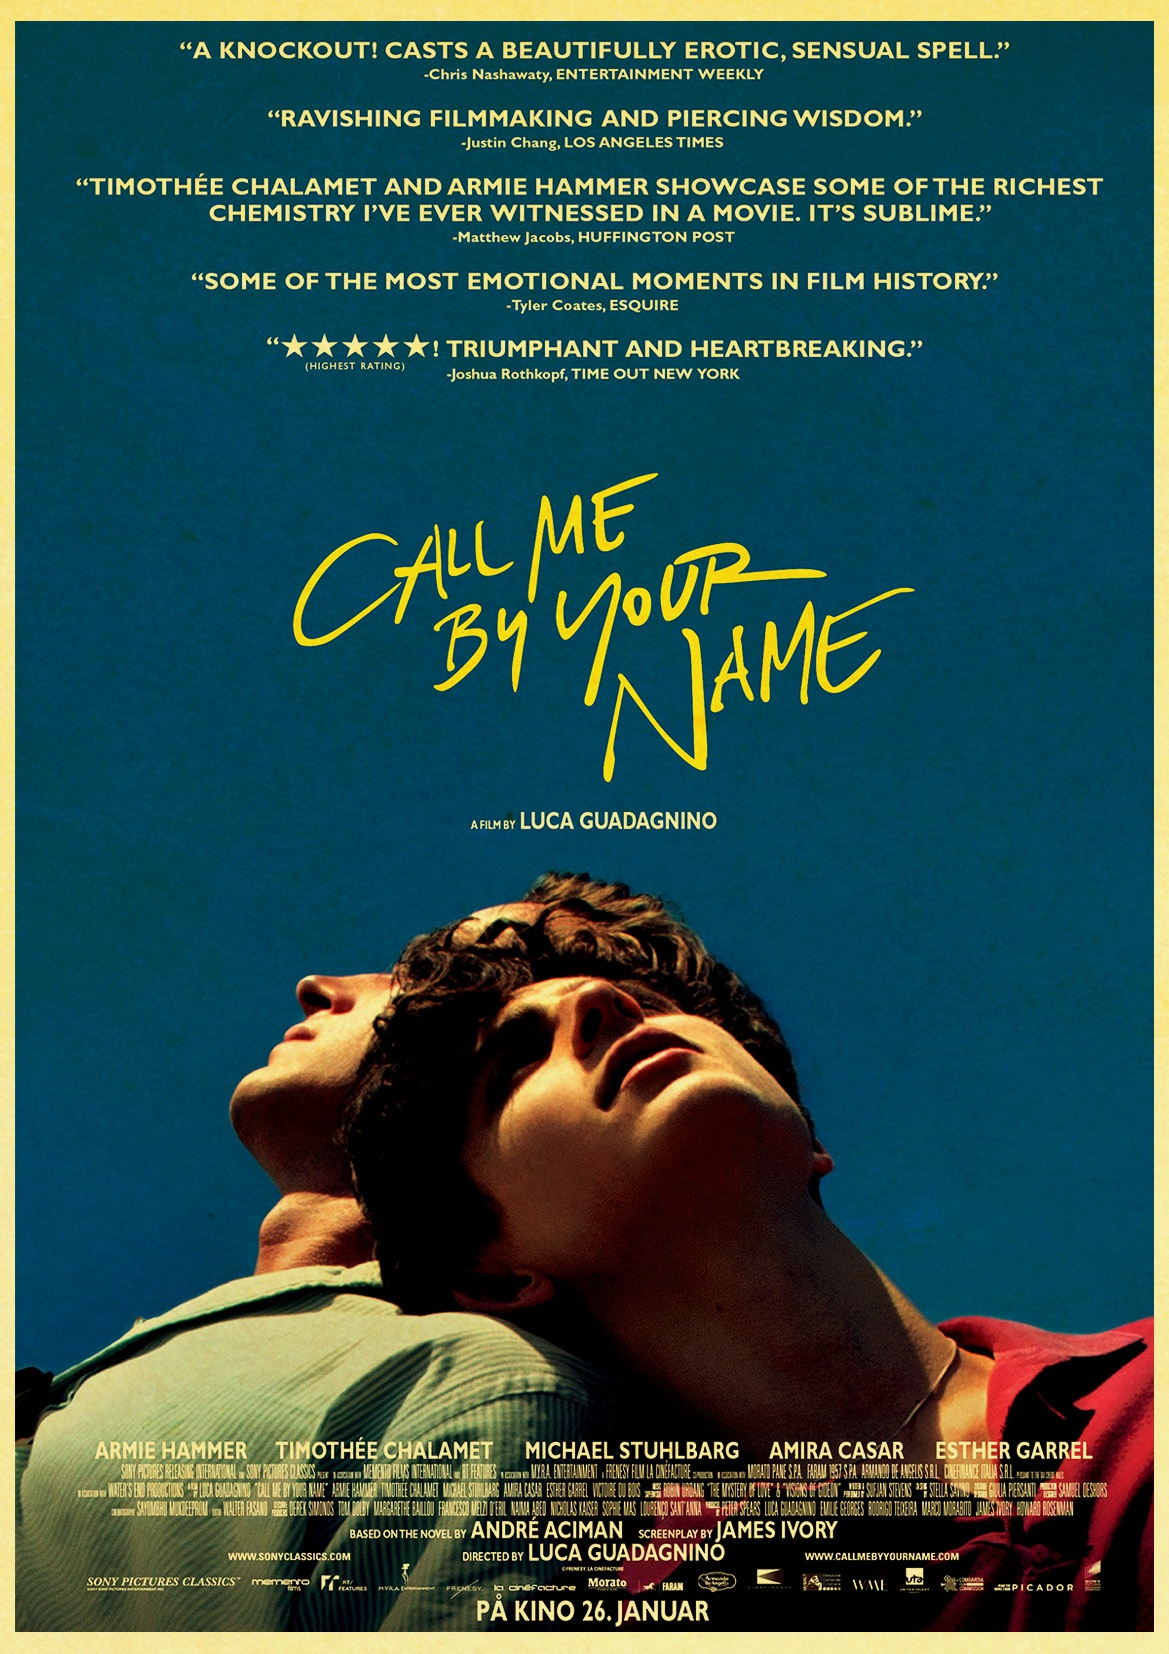 Y-97 Call Me By Your Name Movie Luca Guadagnino 2018 Hot Poster 21 24x36 27x40IN